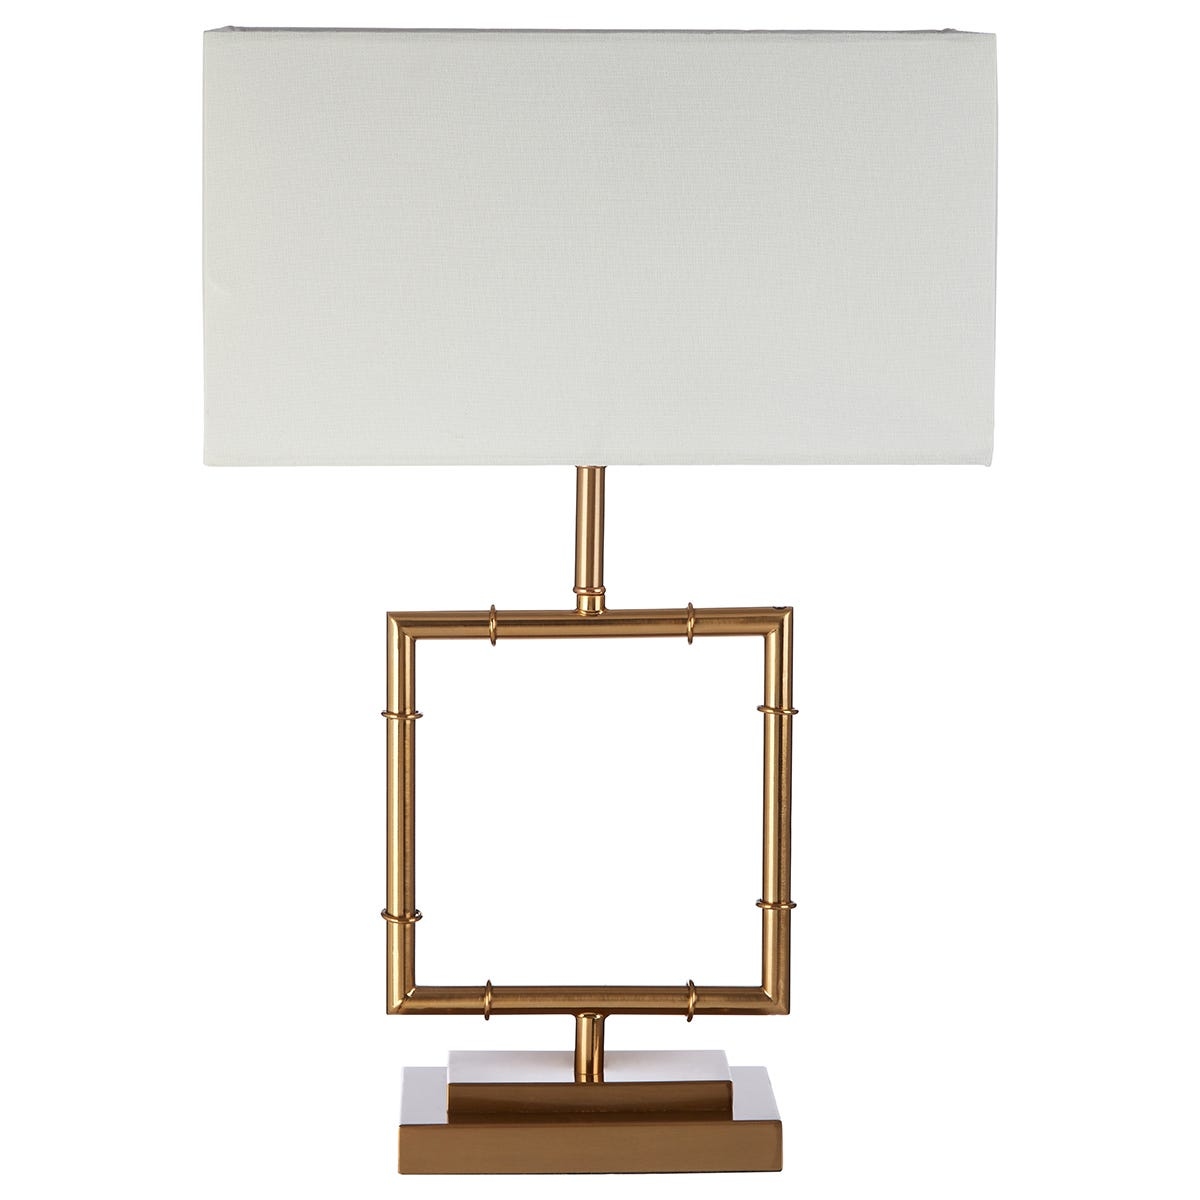 Premier Housewares Zofie Table Lamp in Gold Finish with White Linen Shade